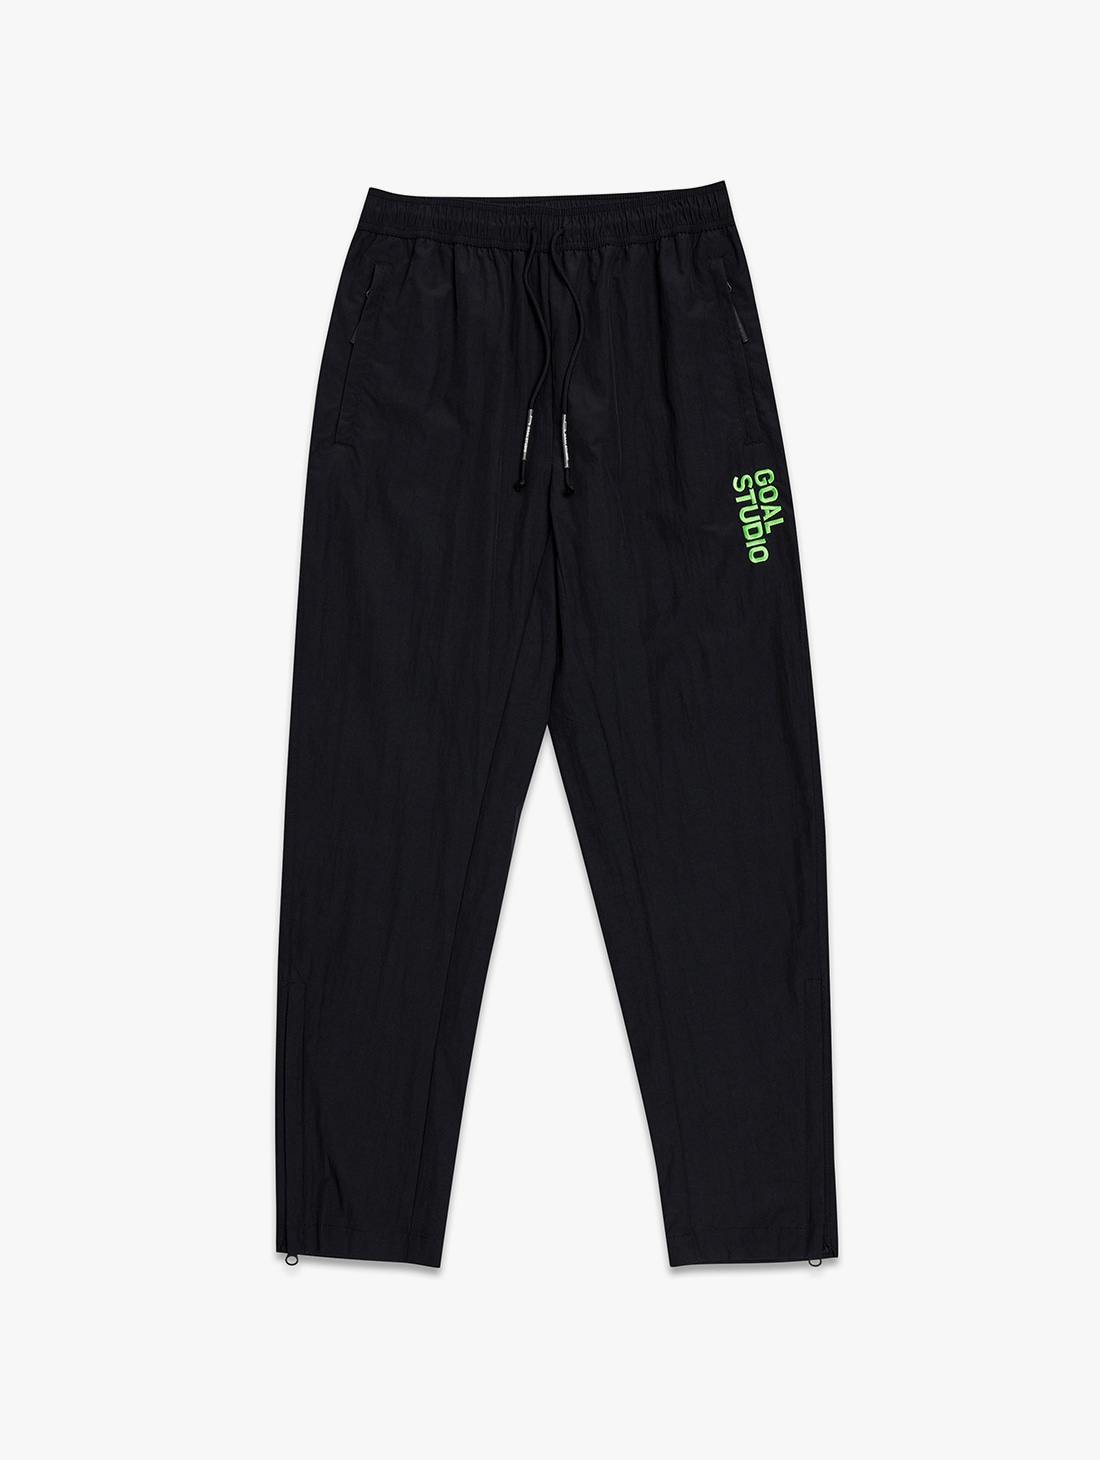 NYLON BLEND WOVEN PANTS (2 Colors)